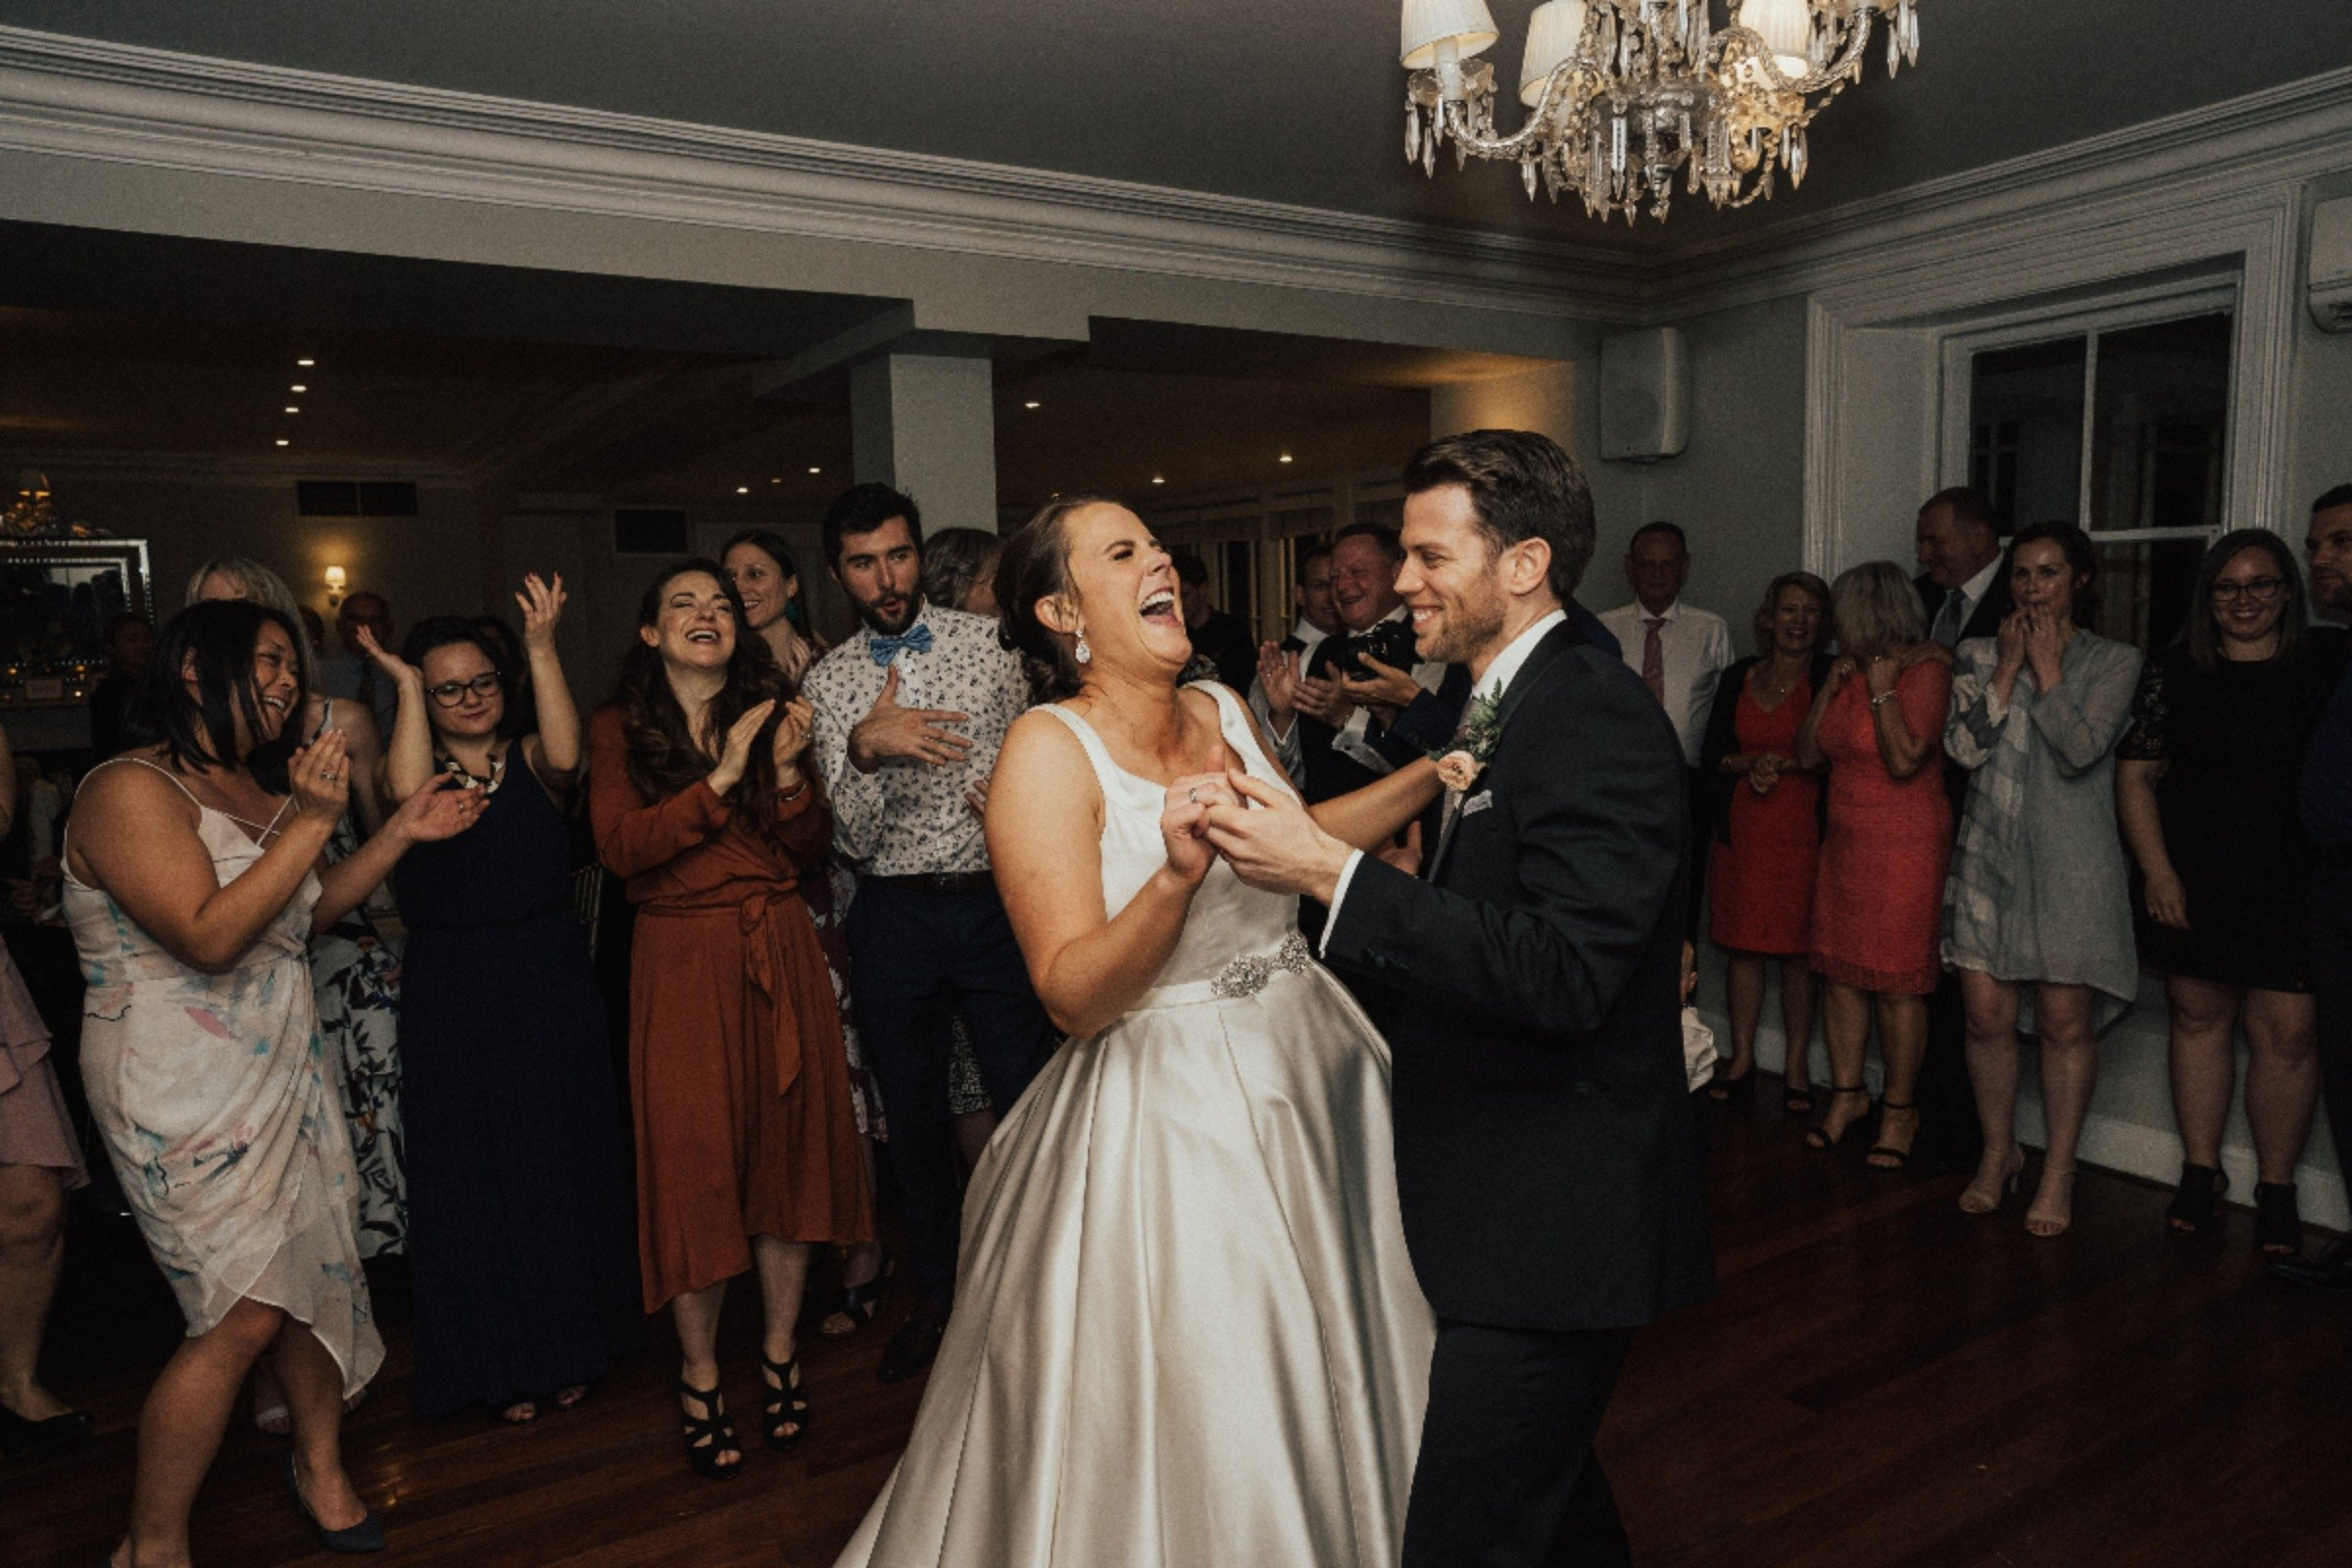 Top 10 Upbeat First Dance Songs For My Wedding